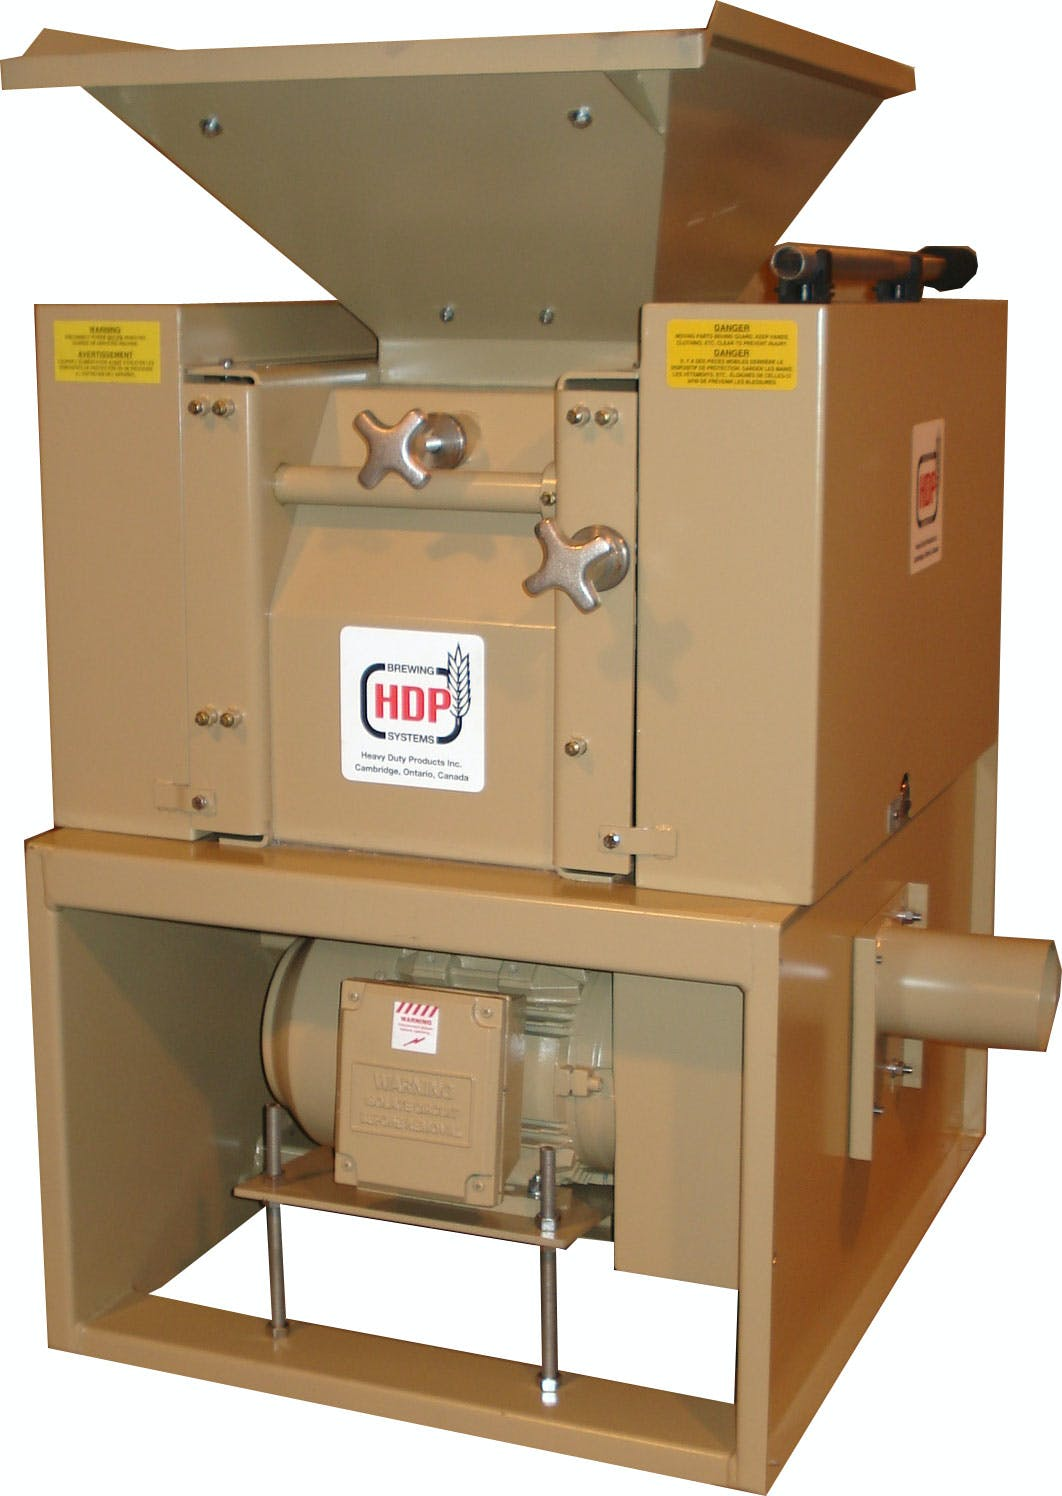 SR 1010 Malt Mill Malt mill sold by HDP Brewing Systems